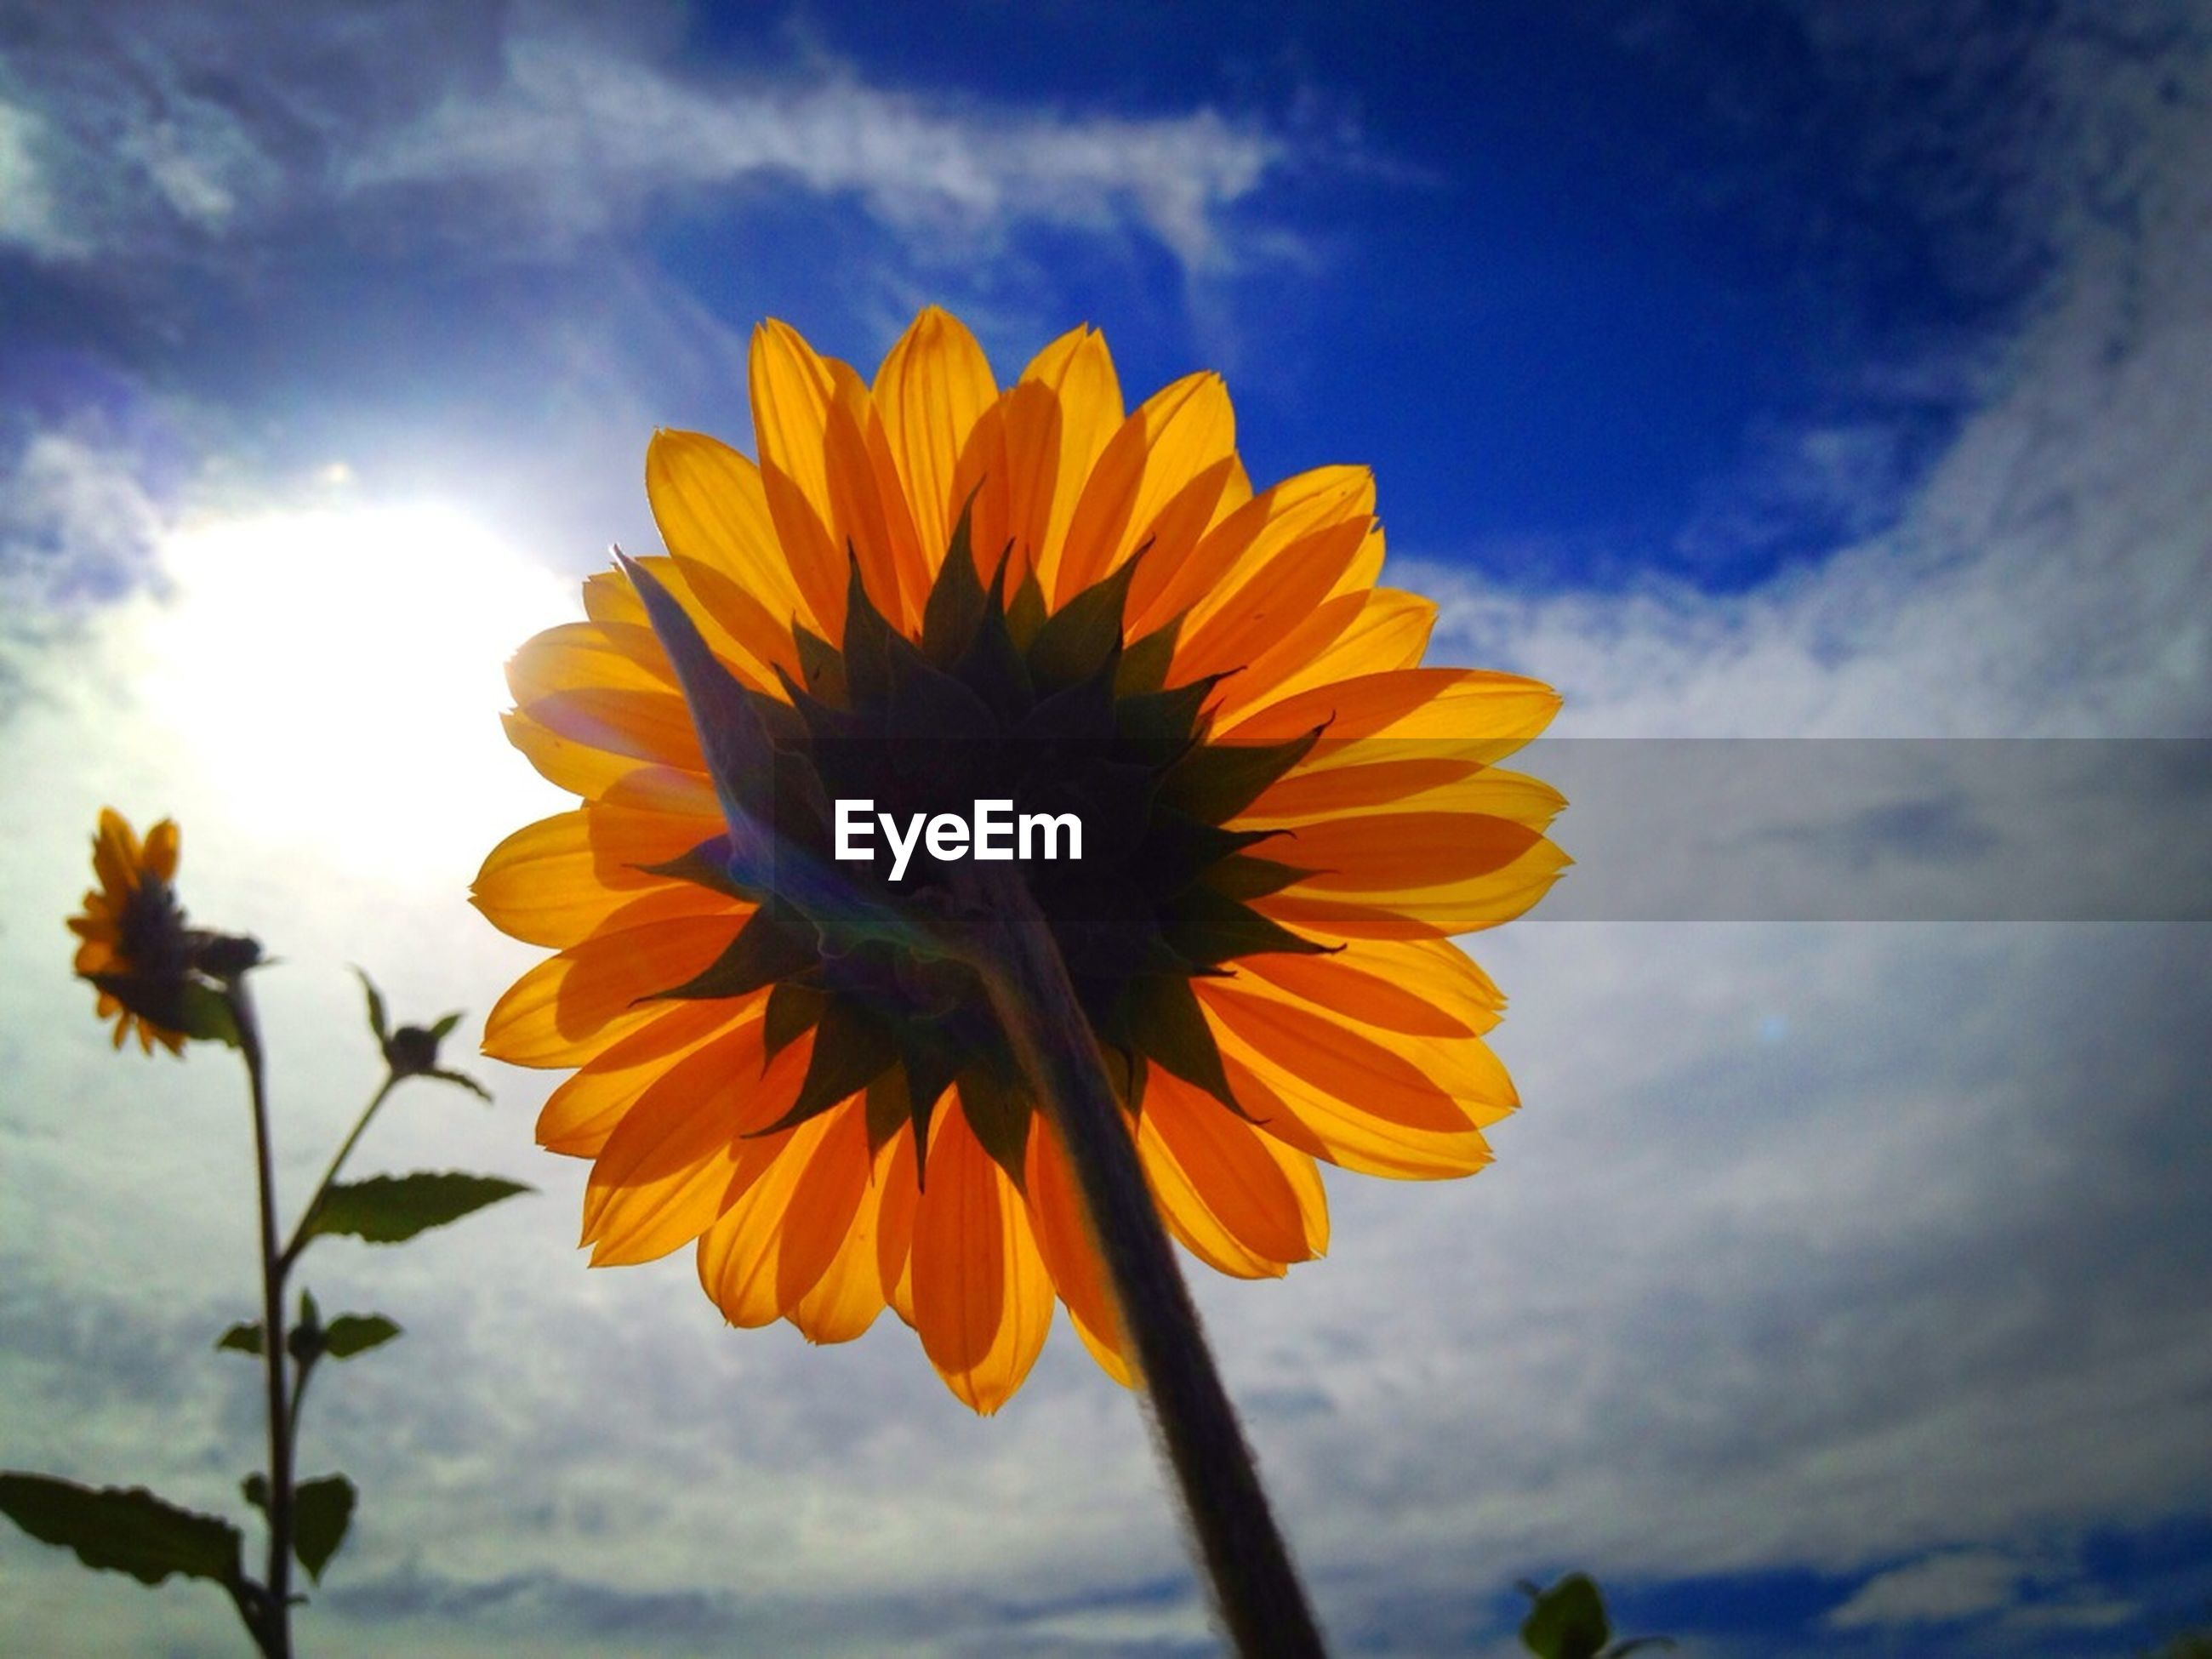 flower, sky, petal, freshness, flower head, fragility, yellow, beauty in nature, growth, low angle view, cloud - sky, sunflower, blooming, nature, cloud, single flower, stem, pollen, plant, close-up